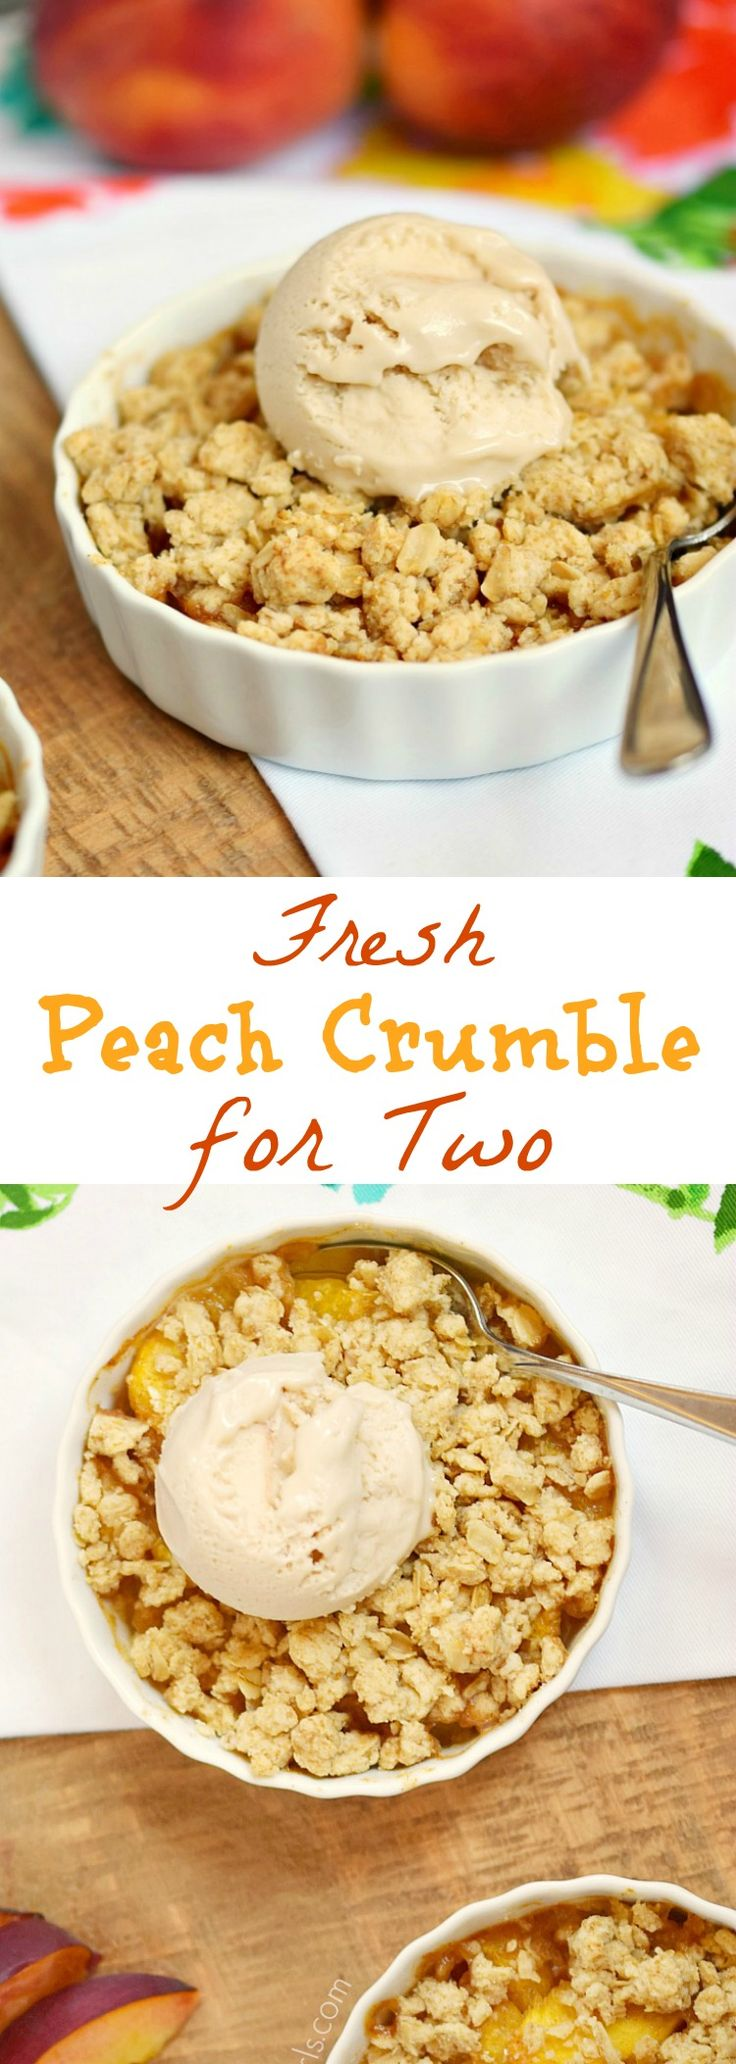 This Fresh Peach Crumble is filled with juicy, spiced peaches and topped with an oatmeal topping for the perfect ending to any meal | cookingwithcurls.com